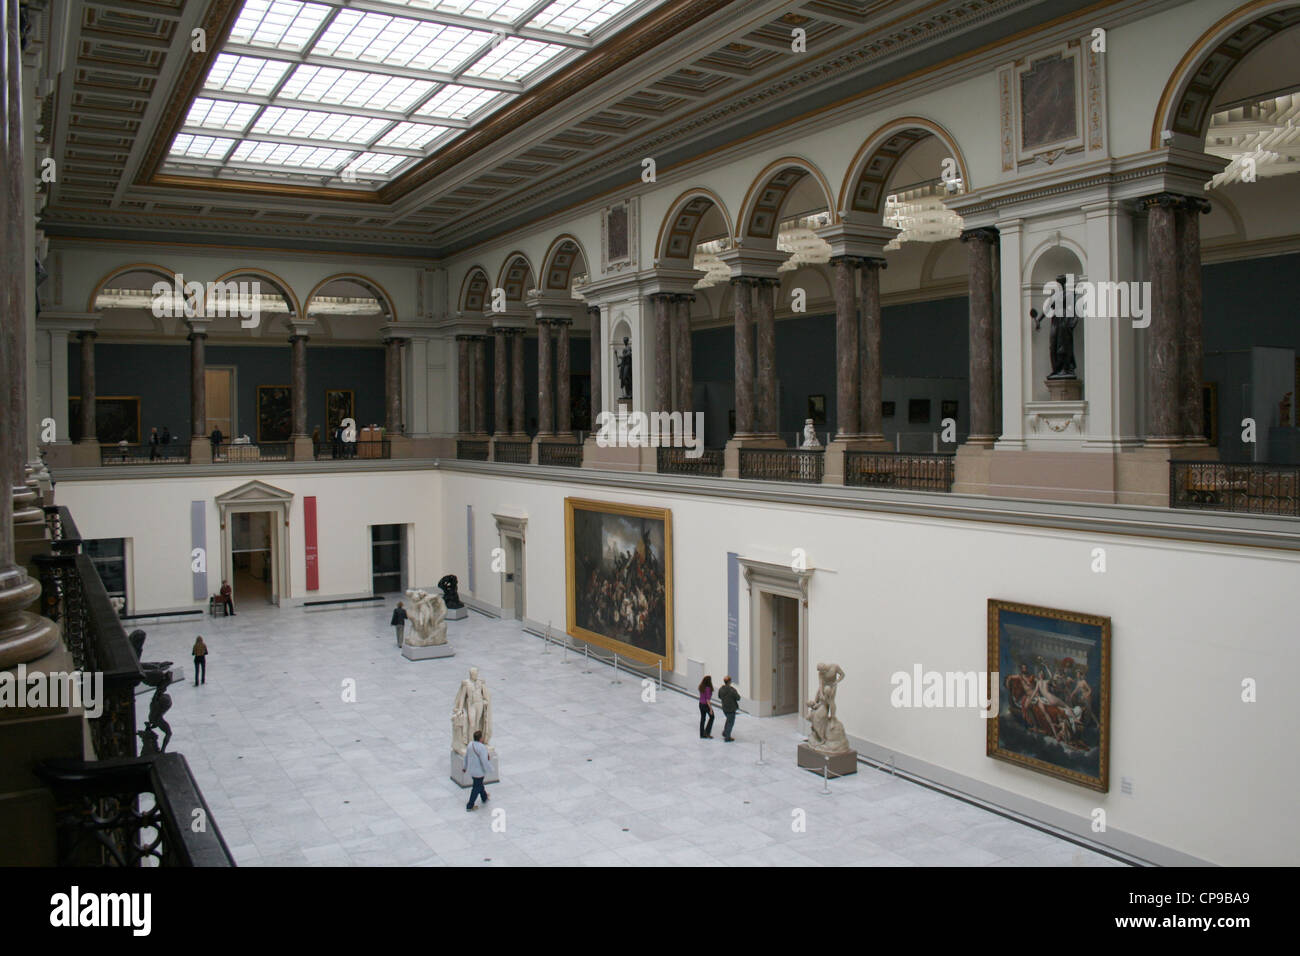 Main Hall of the Royal Museum of Fine Arts of Belgium, Brussels - Stock Image